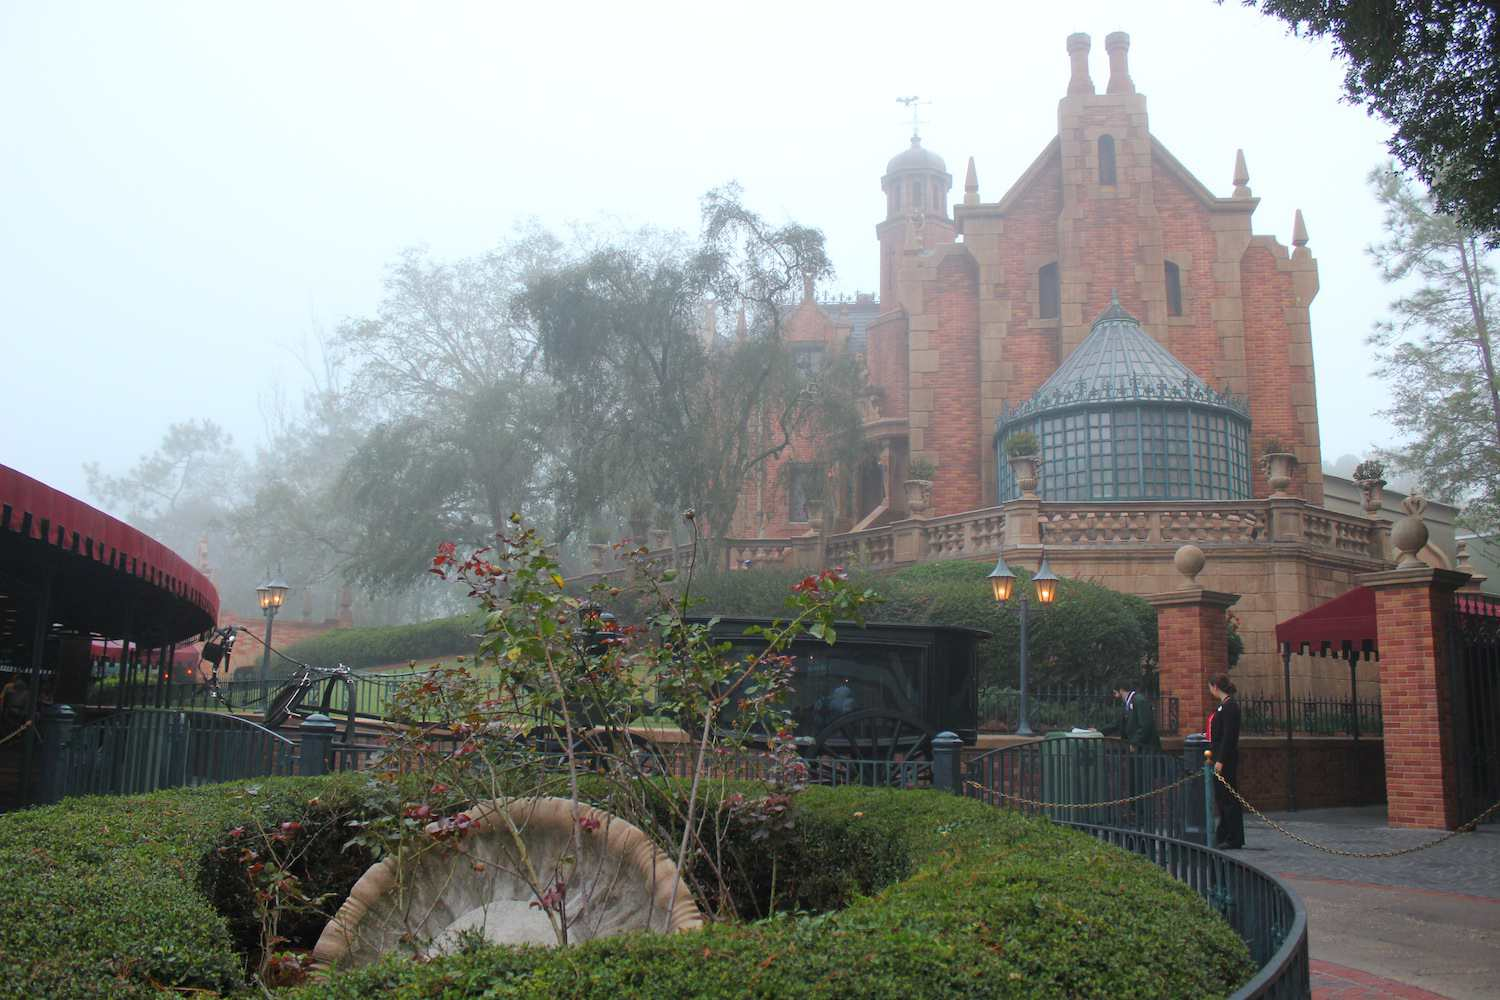 Foggy day at the Haunted Mansion